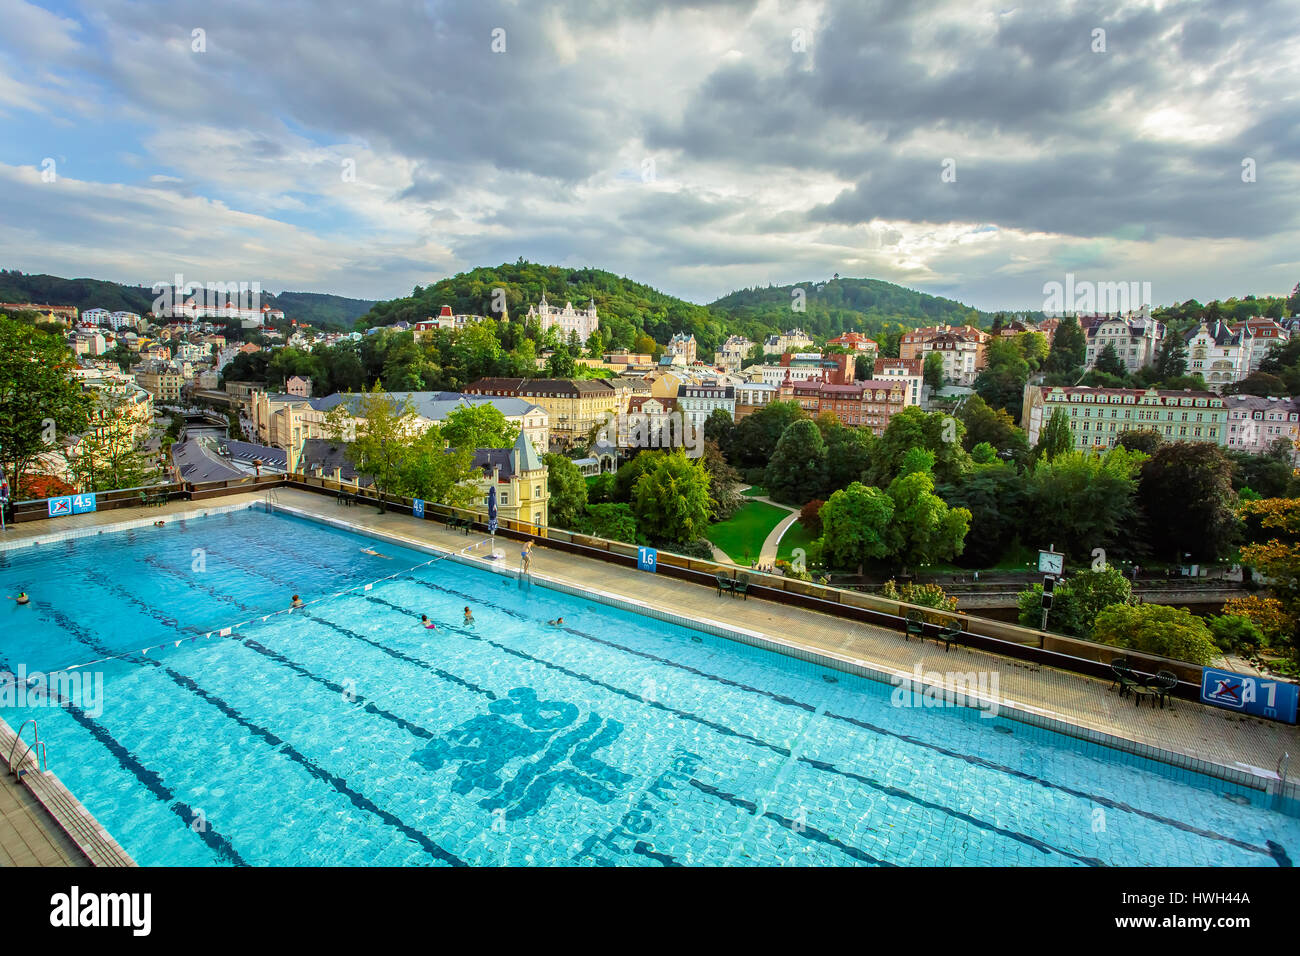 Karlovy Vary, Czech Republic - September 13, 2013: Outdoor swimming poll in the Thermal Hotel - Stock Image